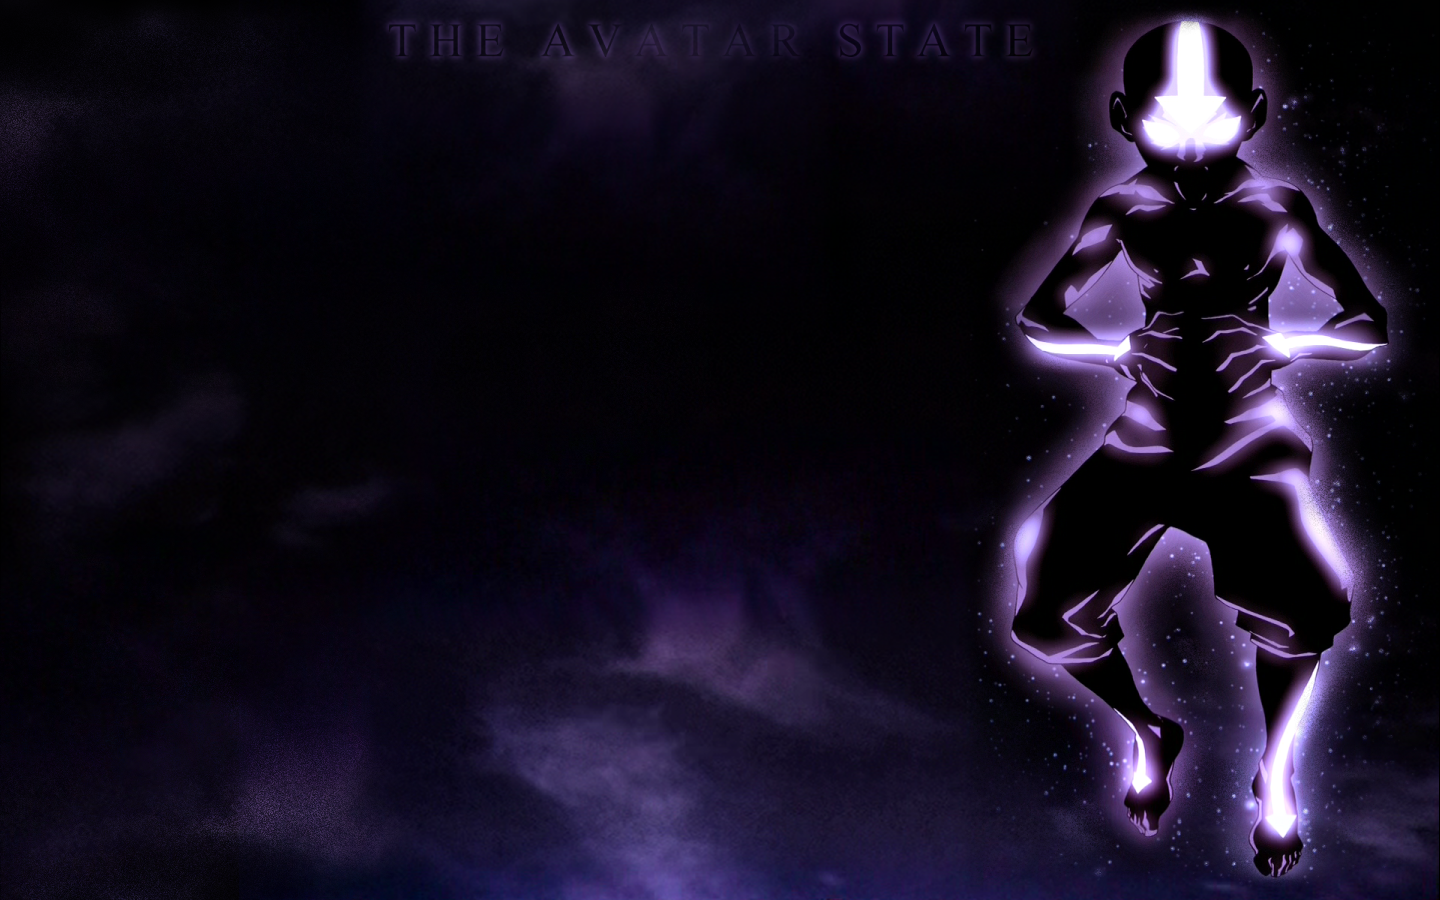 Free Download 40 Avatar The Last Airbender Wallpaper For Download